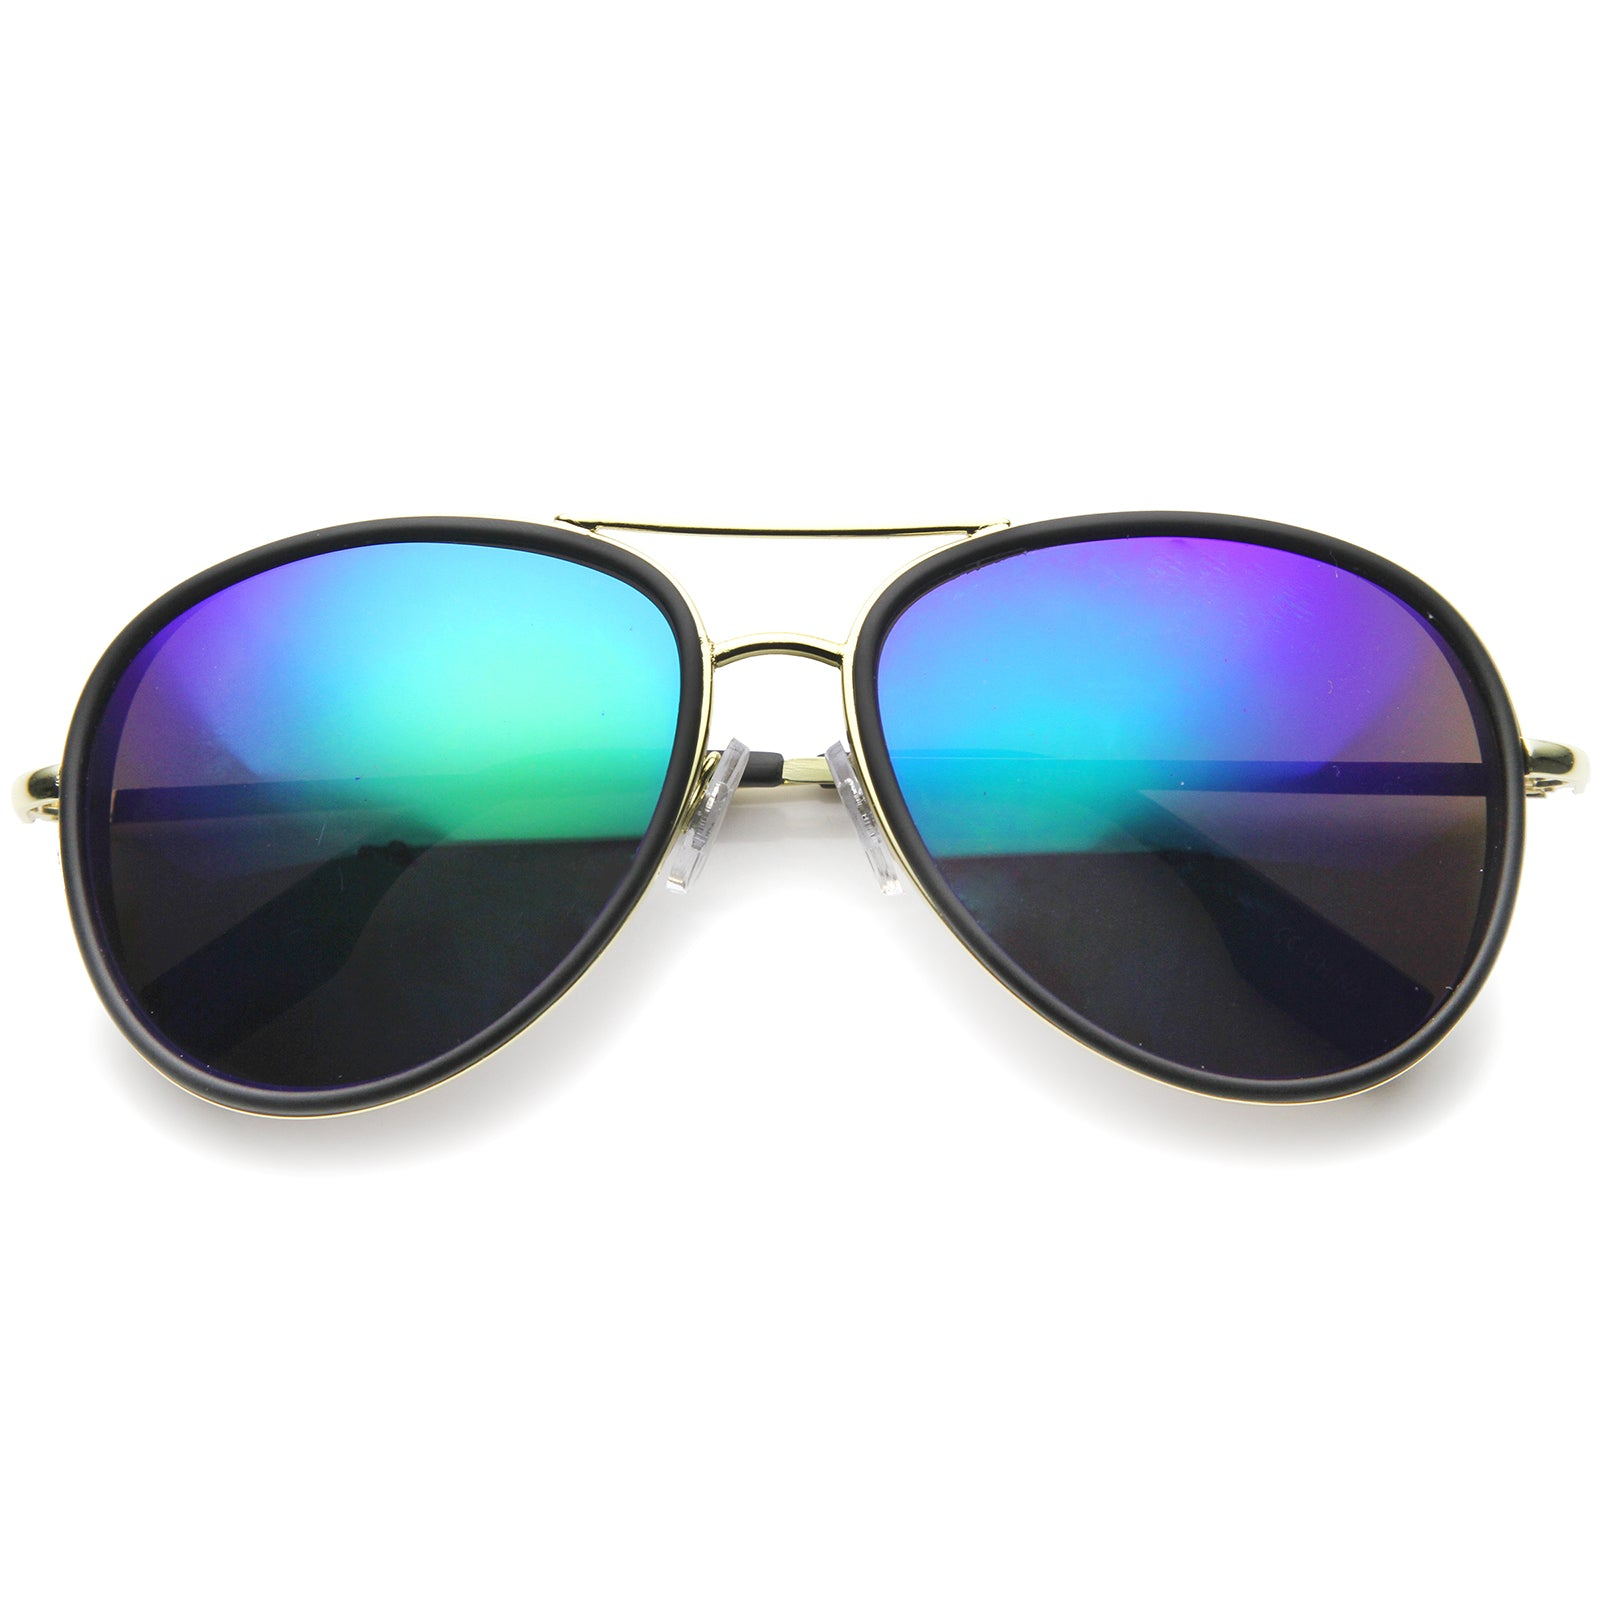 Mens Aviator Sunglasses With UV400 Protected Mirrored Lens - sunglass.la - 5